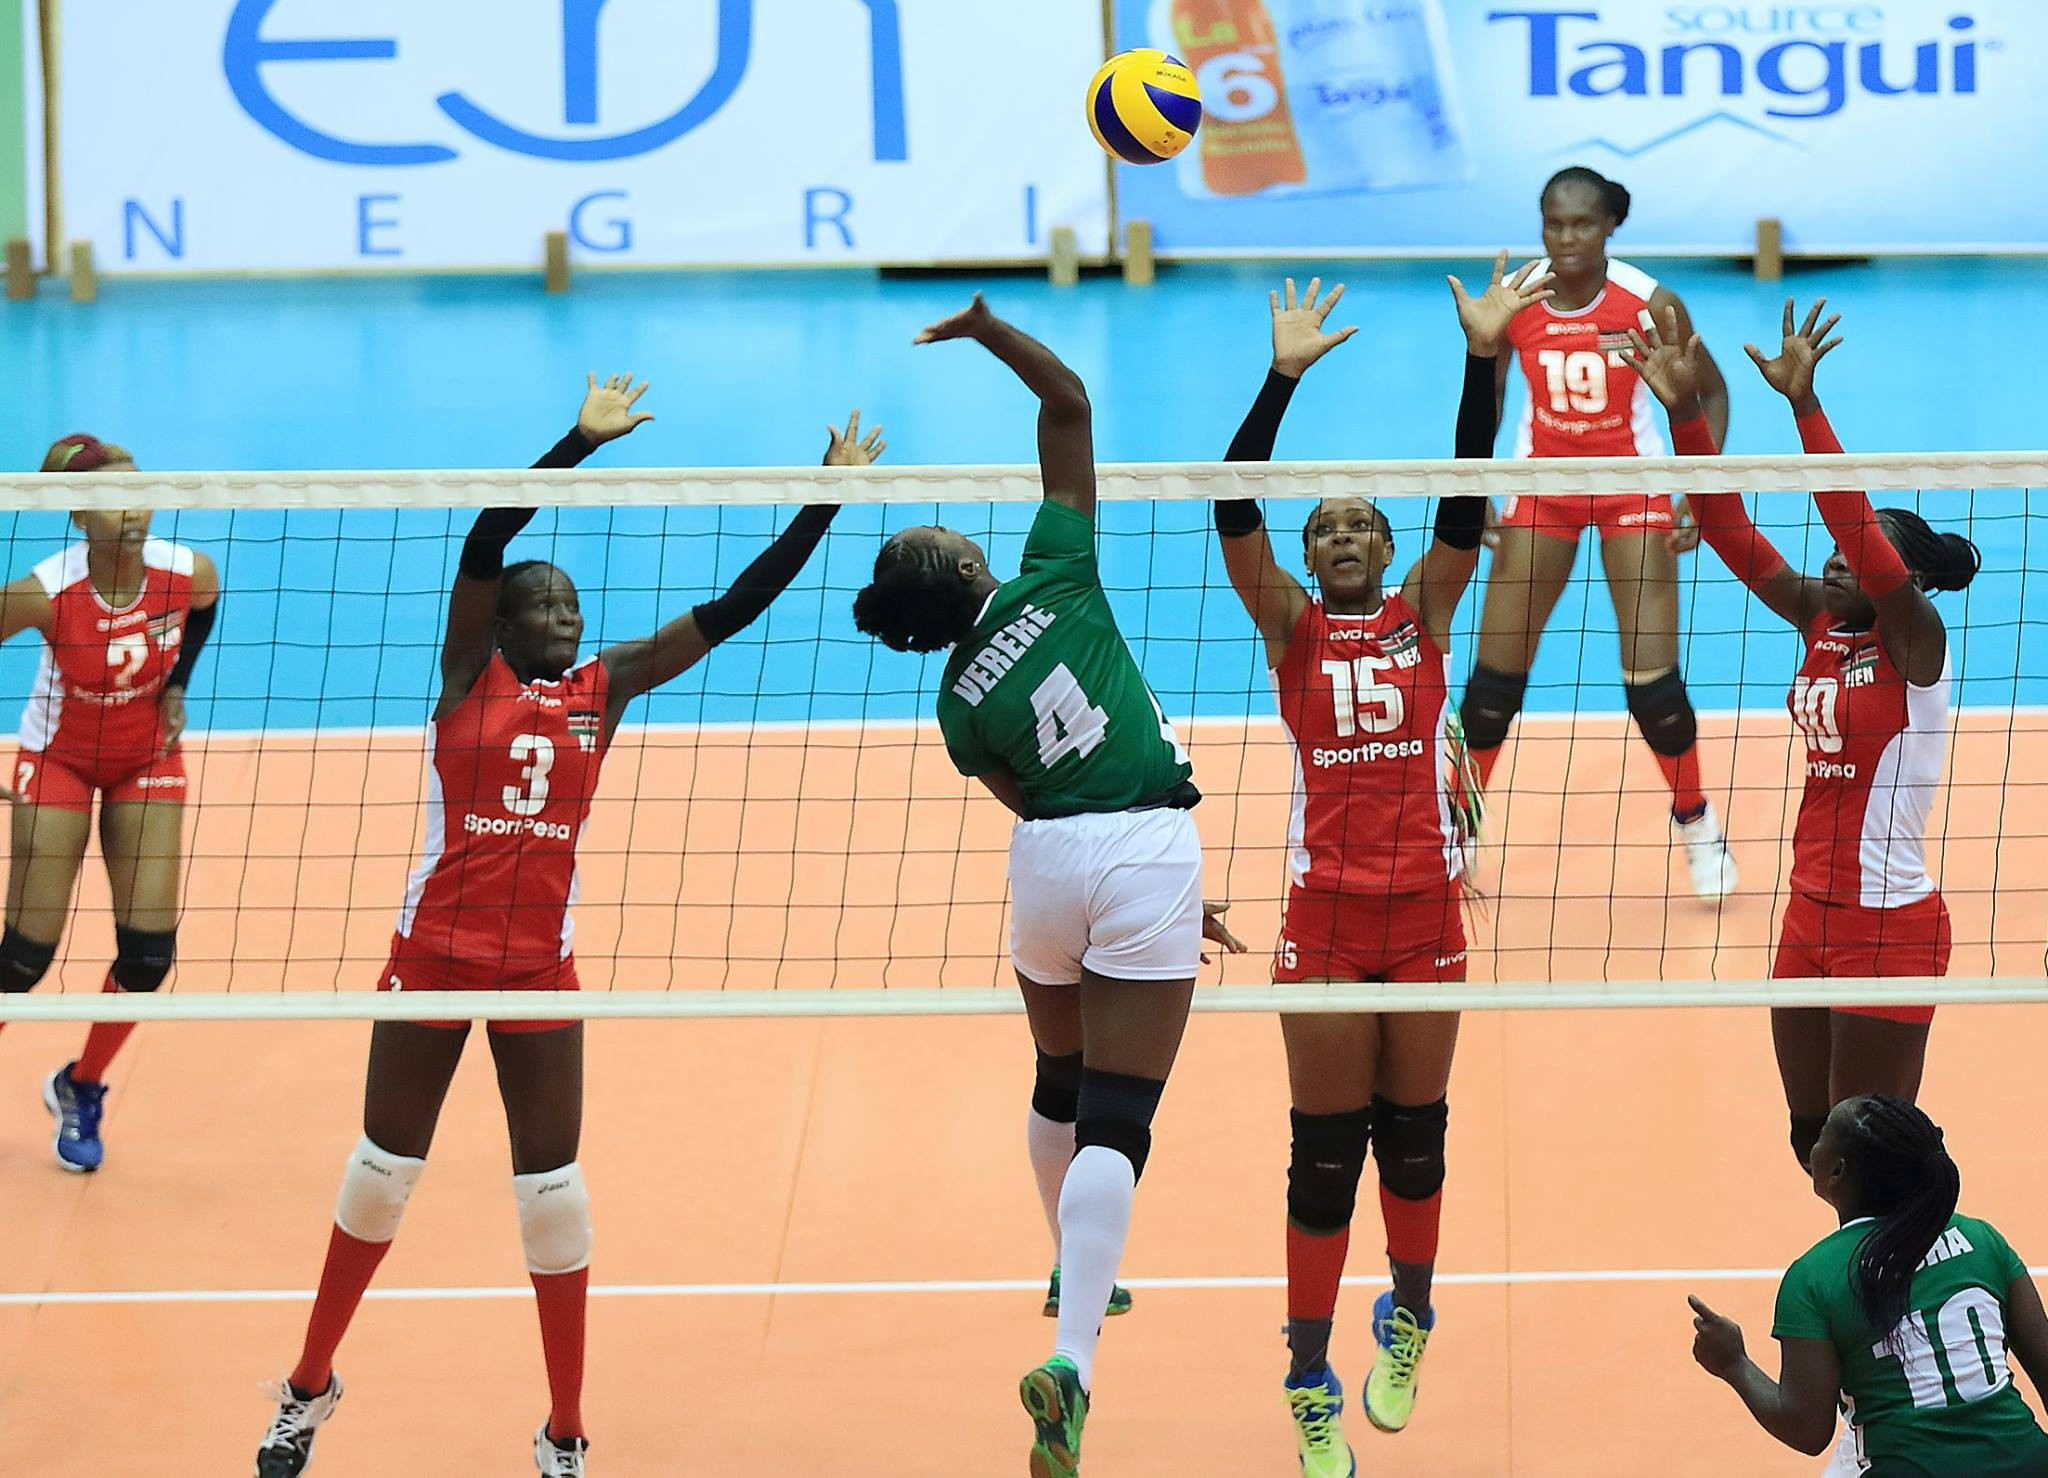 Defending champions Kenya ease to straight sets win as African Women's Volleyball Championship begins